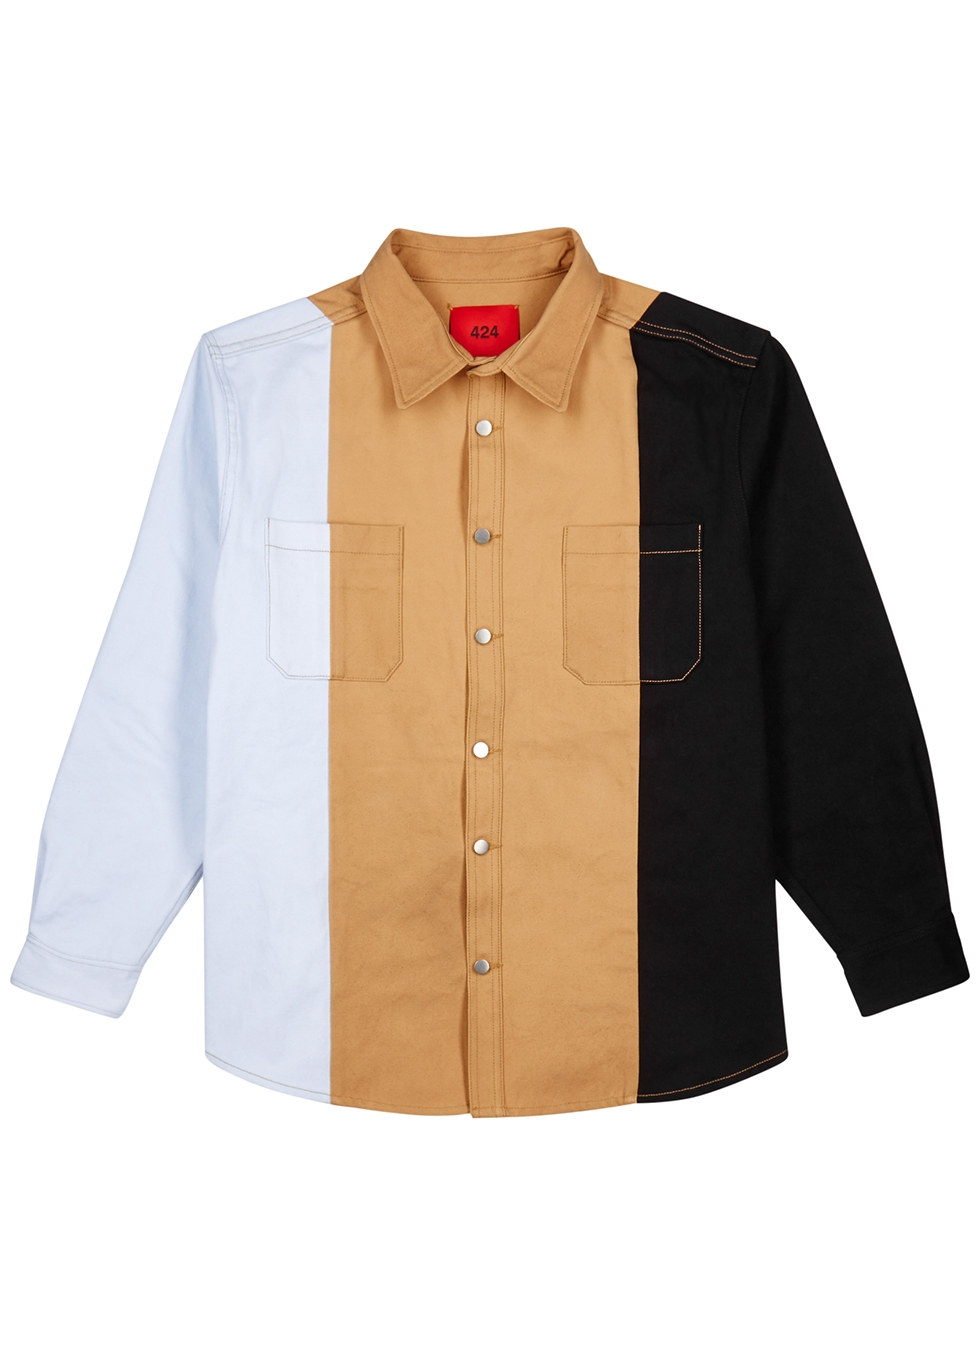 Panelled cotton twill shirt - FourTwoFour